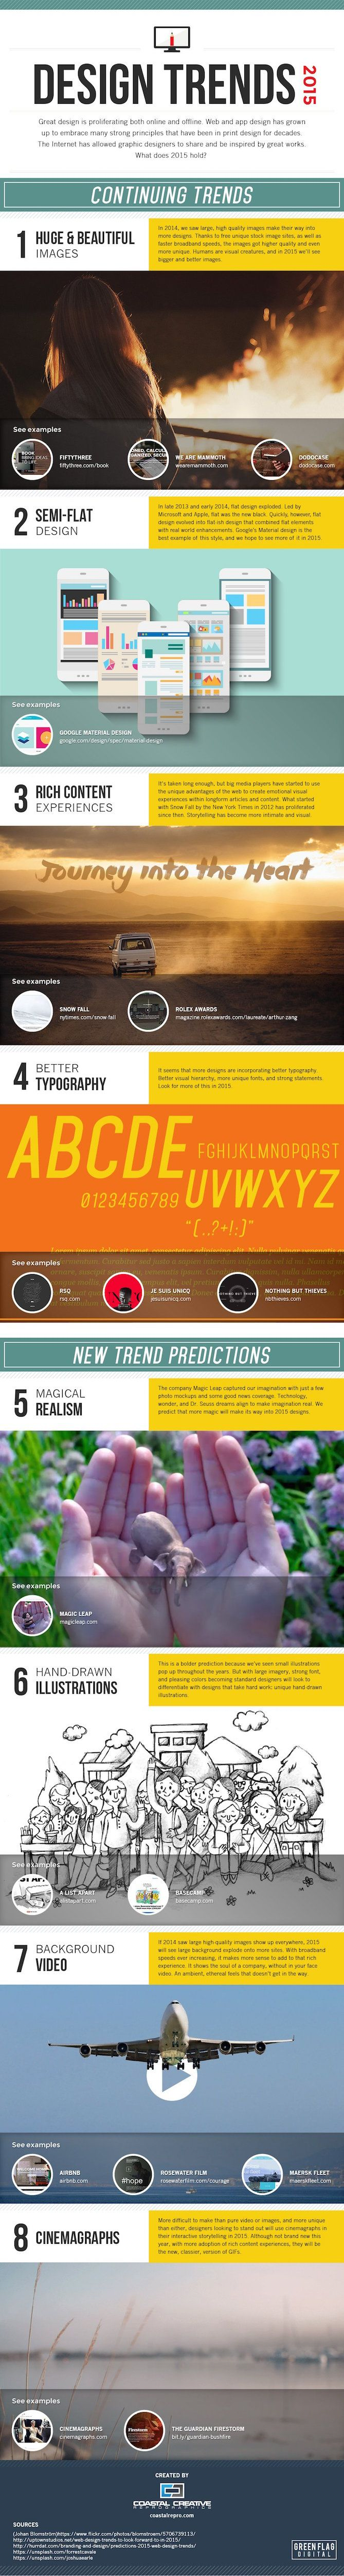 117 best Infographics images on Pinterest